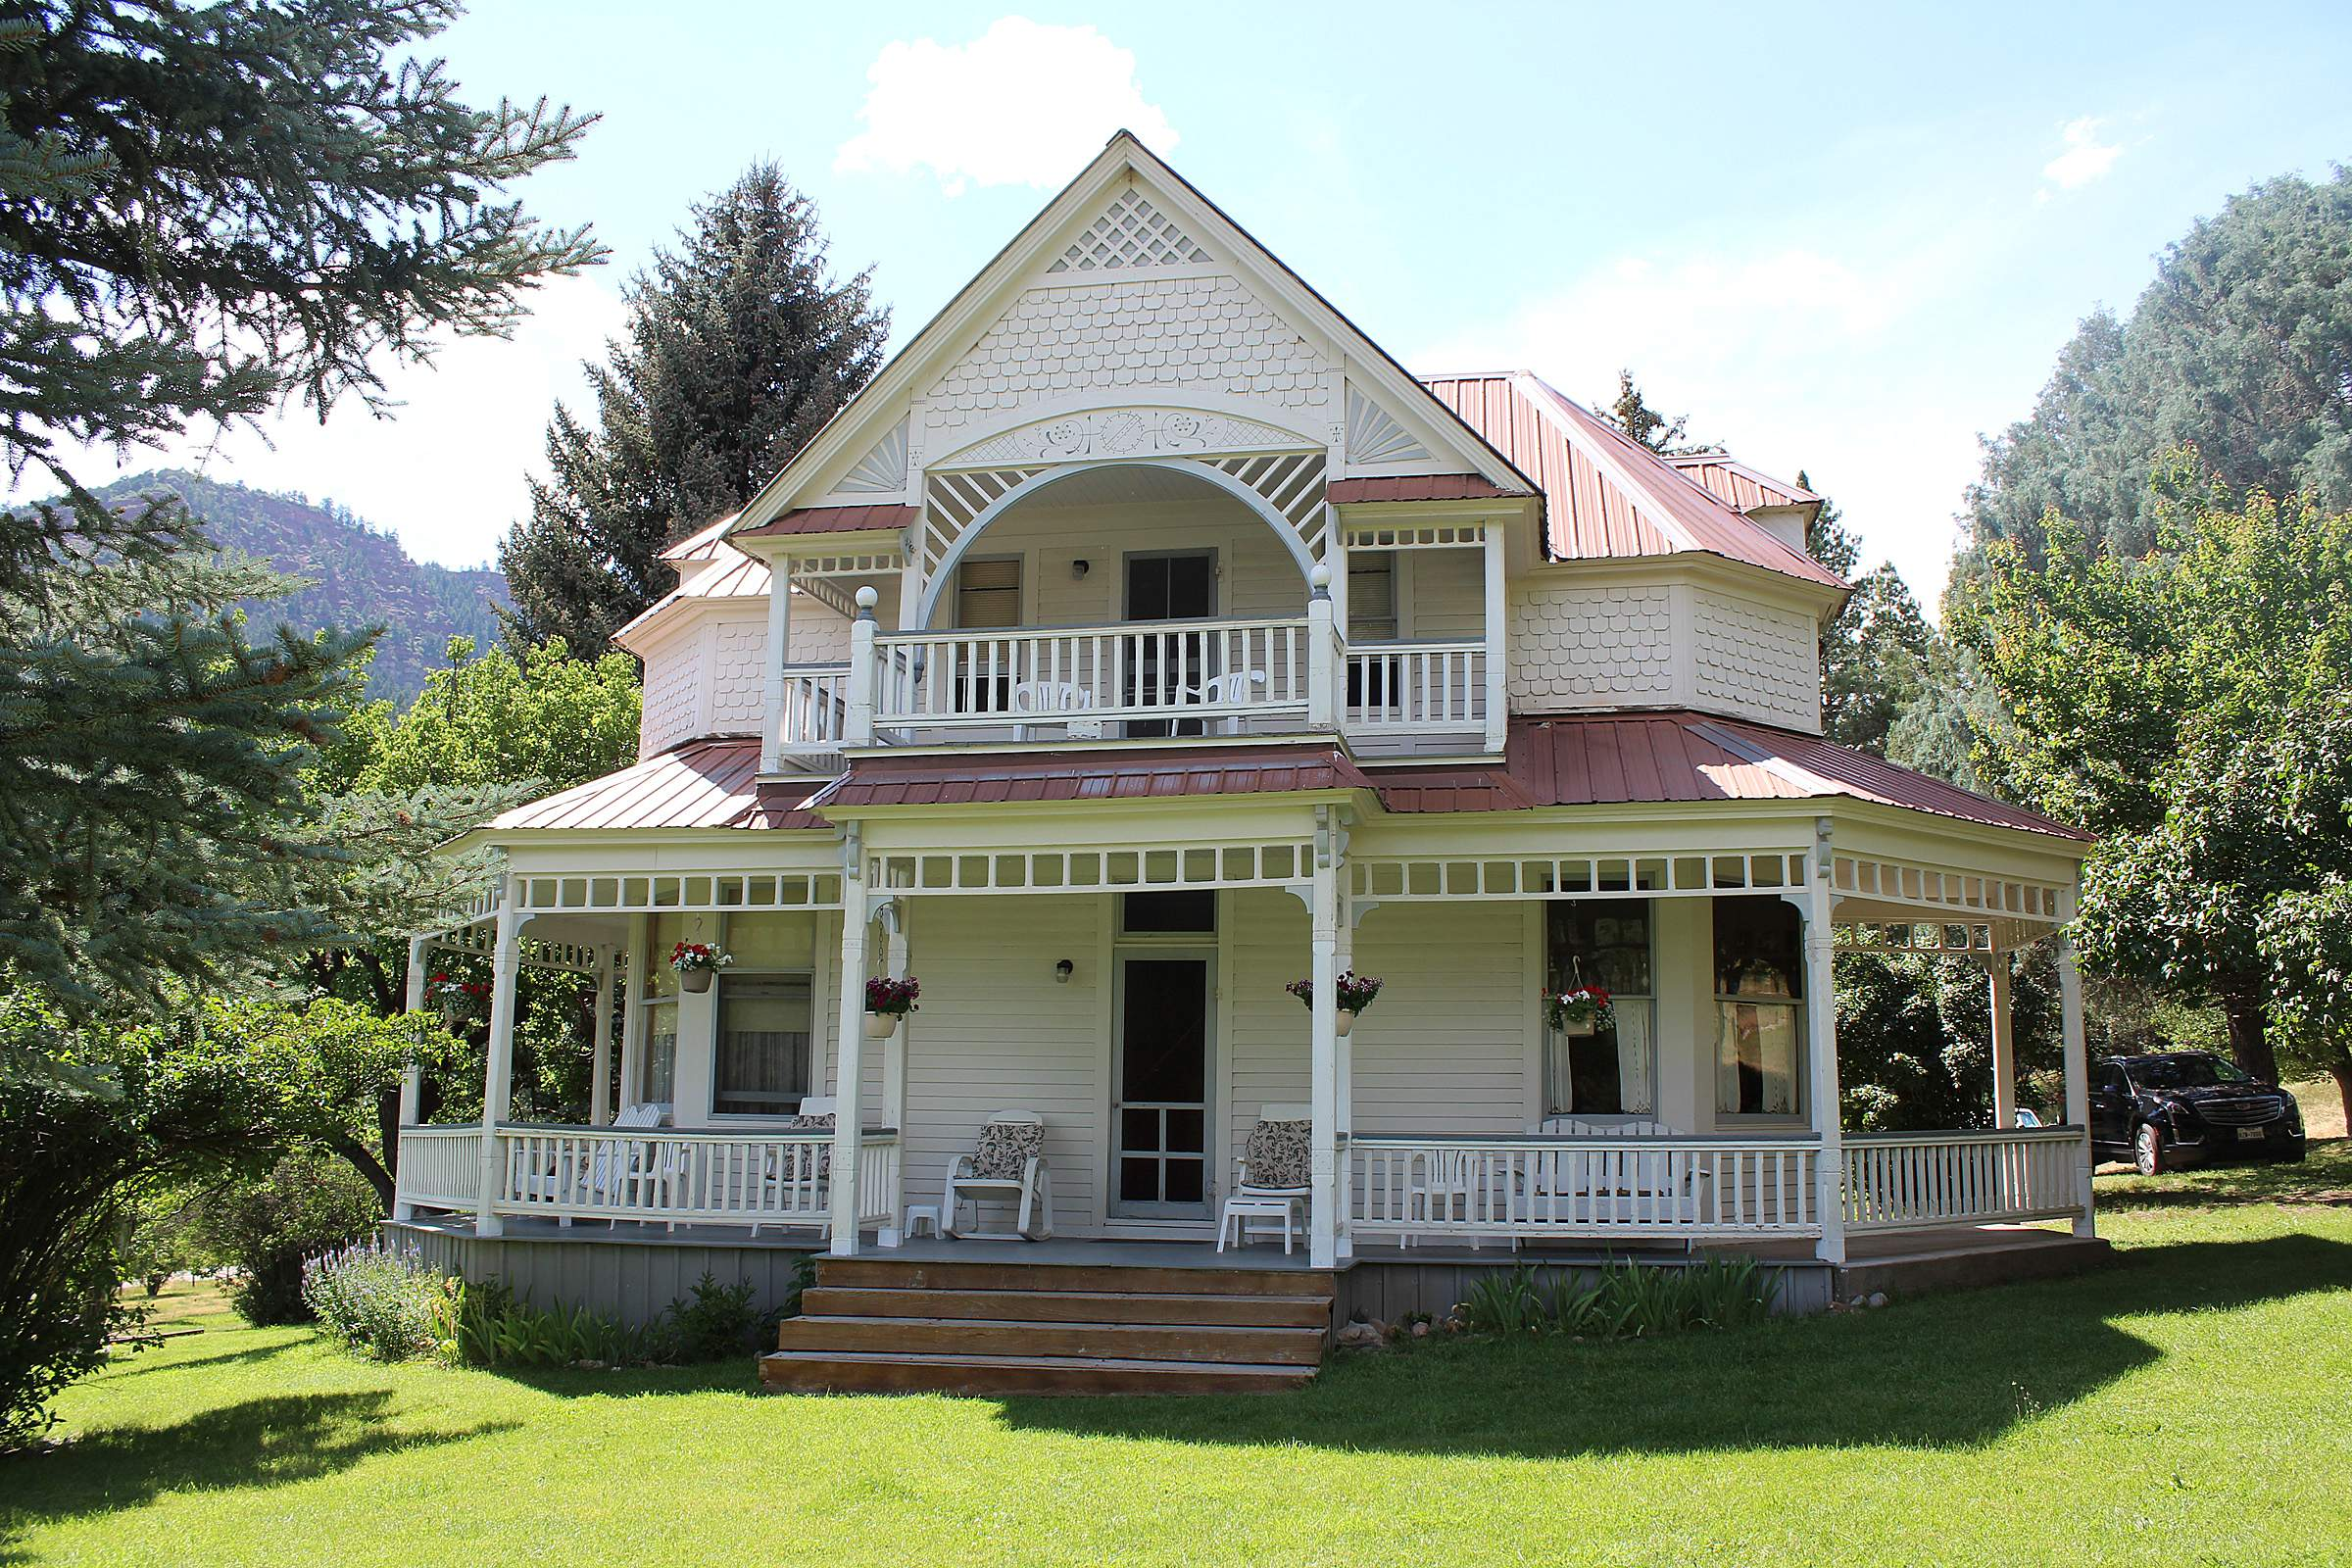 The Charles Fisher House, Built In 1891 In Hermosa, Is One Of The Most  Historic Properties In The Animas River Valley. Fisher Opened The First  Brewery On ...